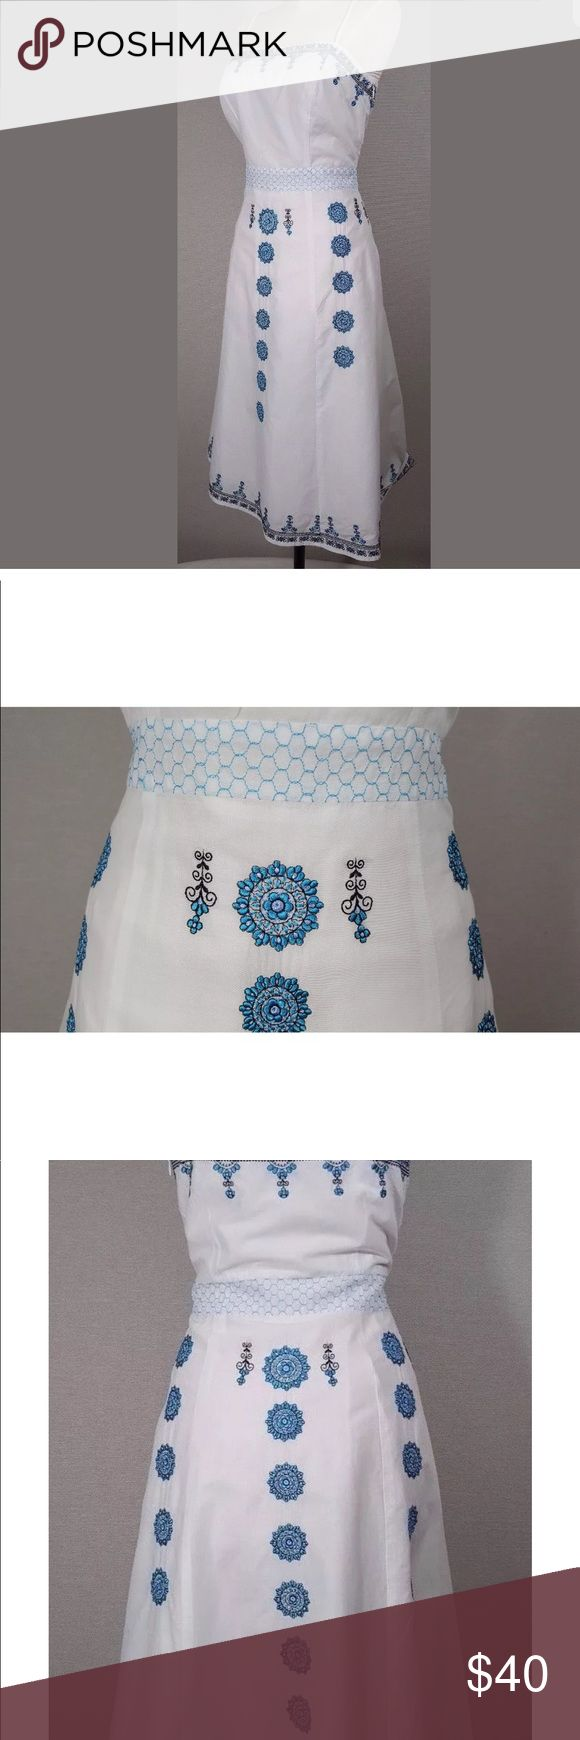 """New Ann Taylor loft embroidered dress ANN TAYLOR LOFT DRESS - FEMININE - ALL OVER EMBROIDERY - FITTED DARTING  BLUE - WHITE EMBROIDERED MANDALA DESIGN    SPAGHETTI STRAPS  DETAILED OVERLAY FITTED WAIST - HONEYCOMB DETAIL AT WAIST   SIDE ZIP WITH HOOK CLOSURE  LINED - TACKED AT HEMS   MATERIAL : DRESS 100% COTTON - LINING 100% ACETATE - EMBROIDERY 100% POLYESTER    ZIPPER LENGTH FROM TOP TO BOTTOM : 13""""  LENGTH FROM TOP OF BACK NECKLINE STRAIGHT DOWN TO BOTTOM EDGE OF HEM: 31 Ann Taylor…"""